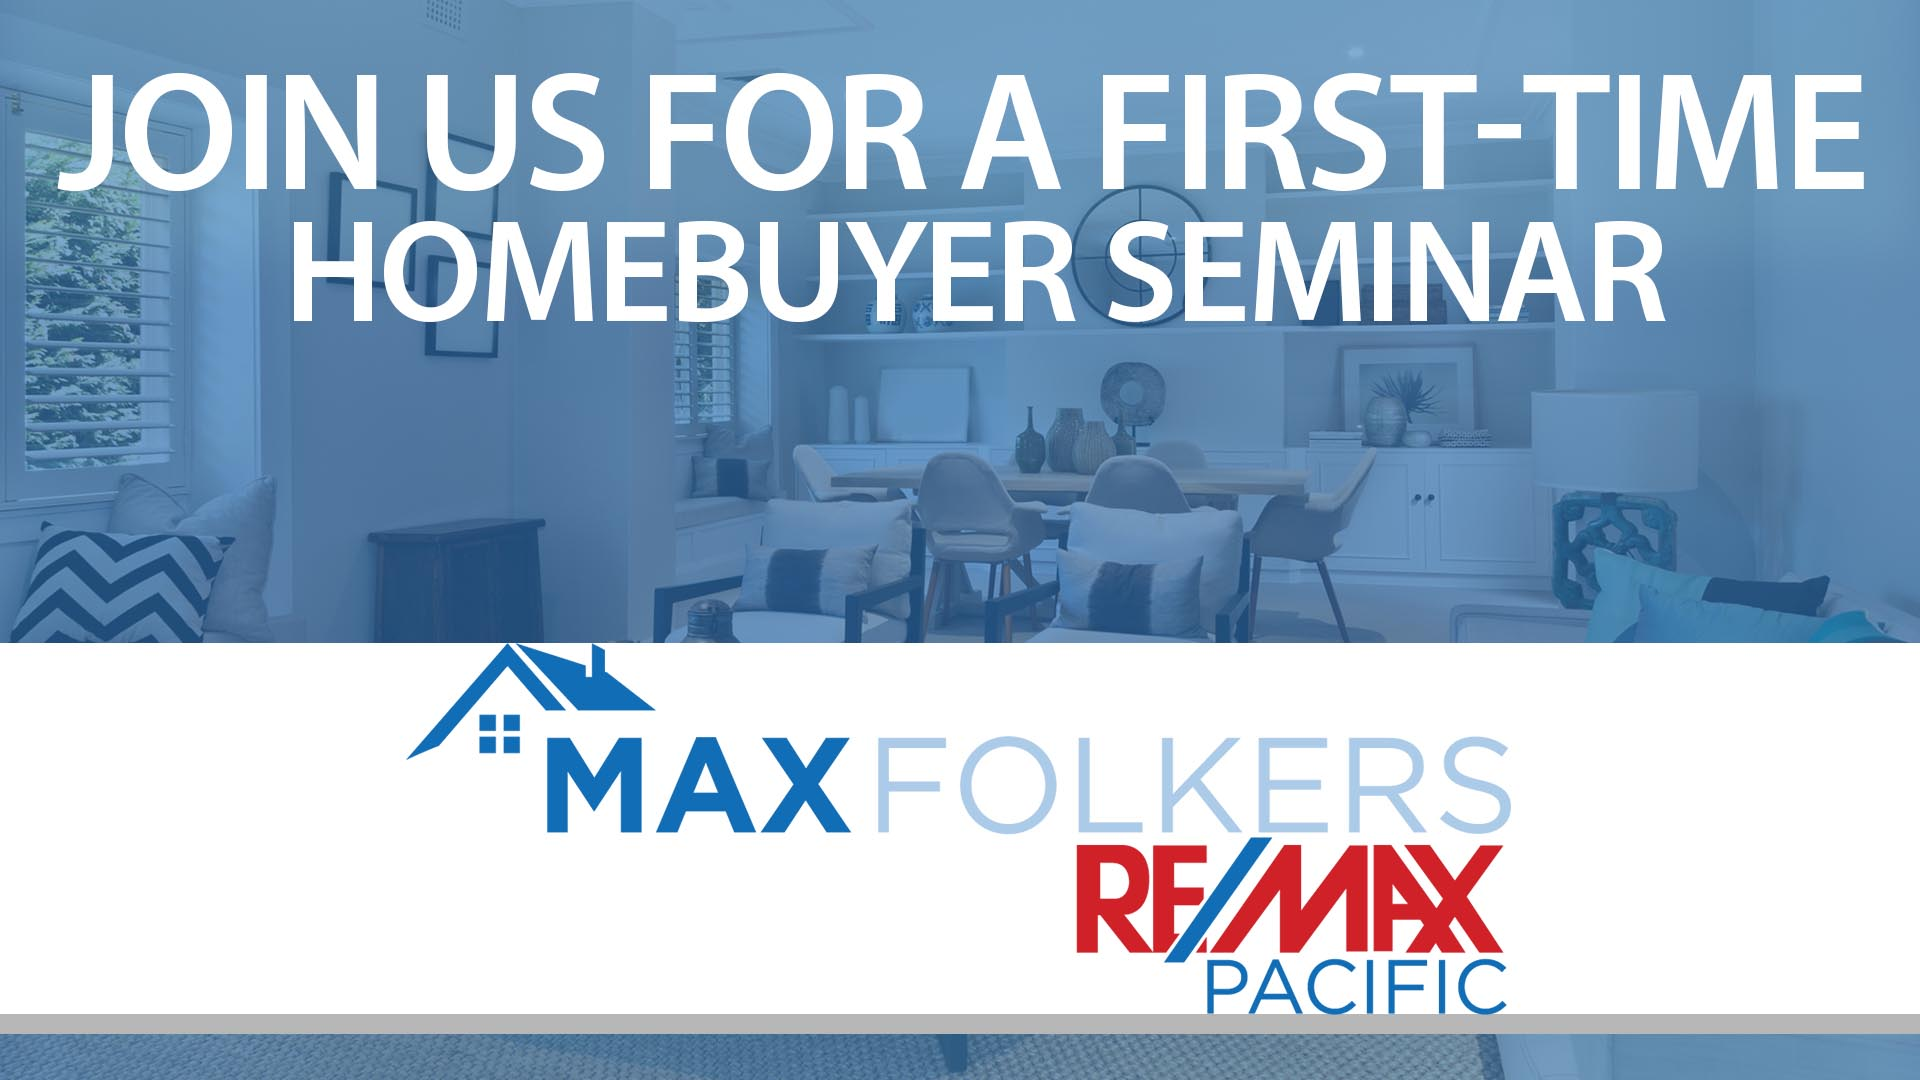 Join Us for a First-Time Homebuyer Seminar